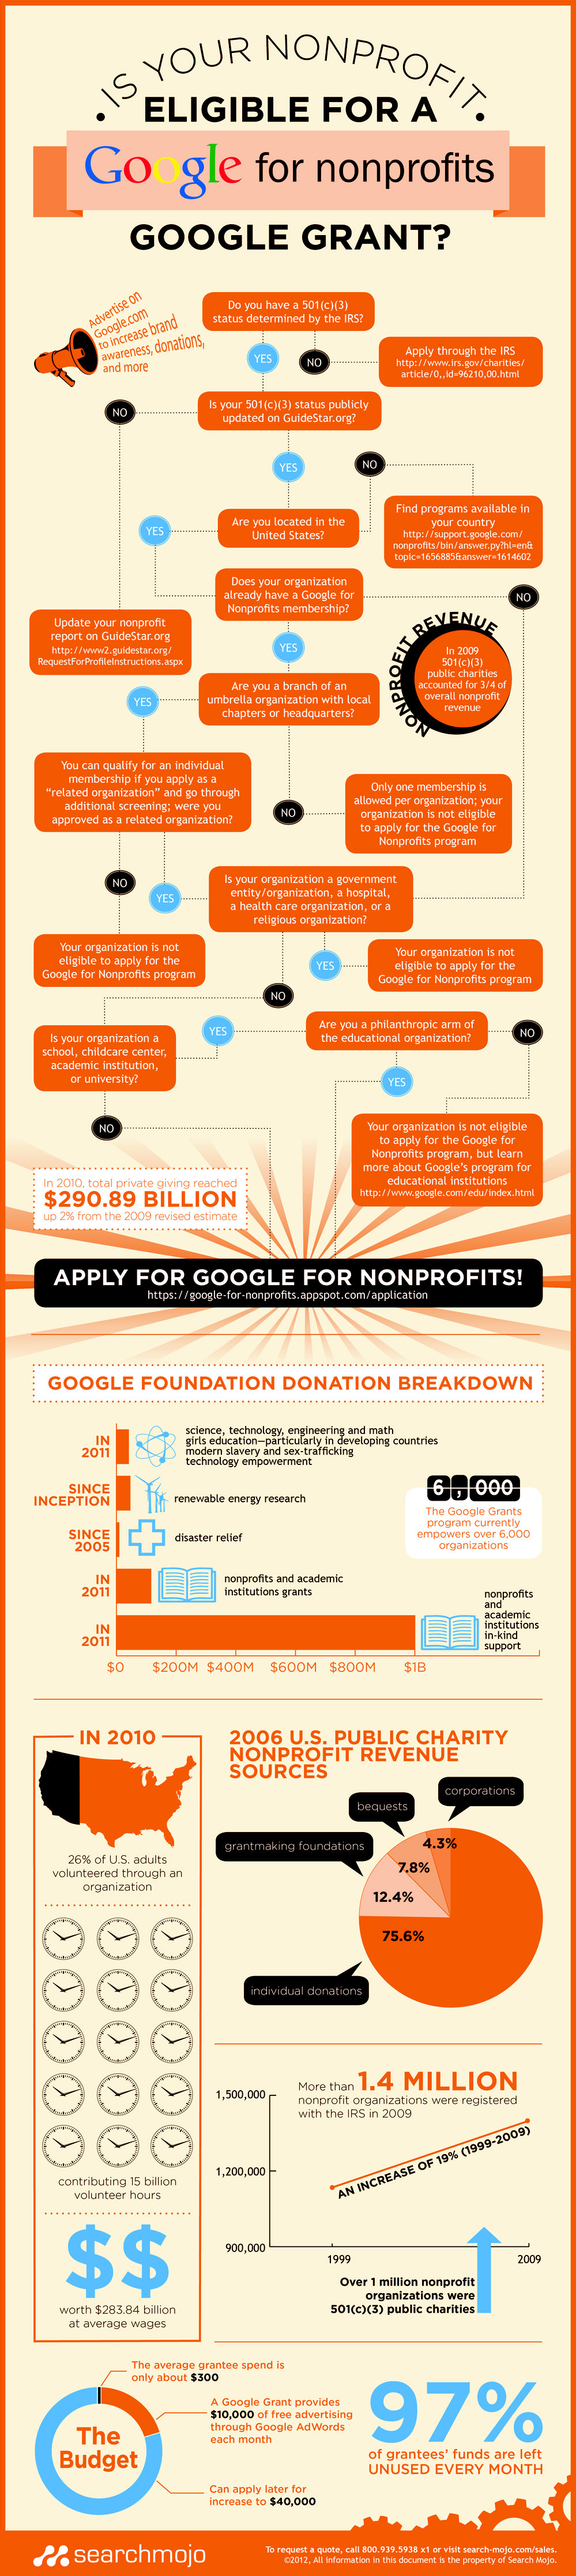 Is Your Nonprofit Eligible for a Google for Nonprofits Google Grant?